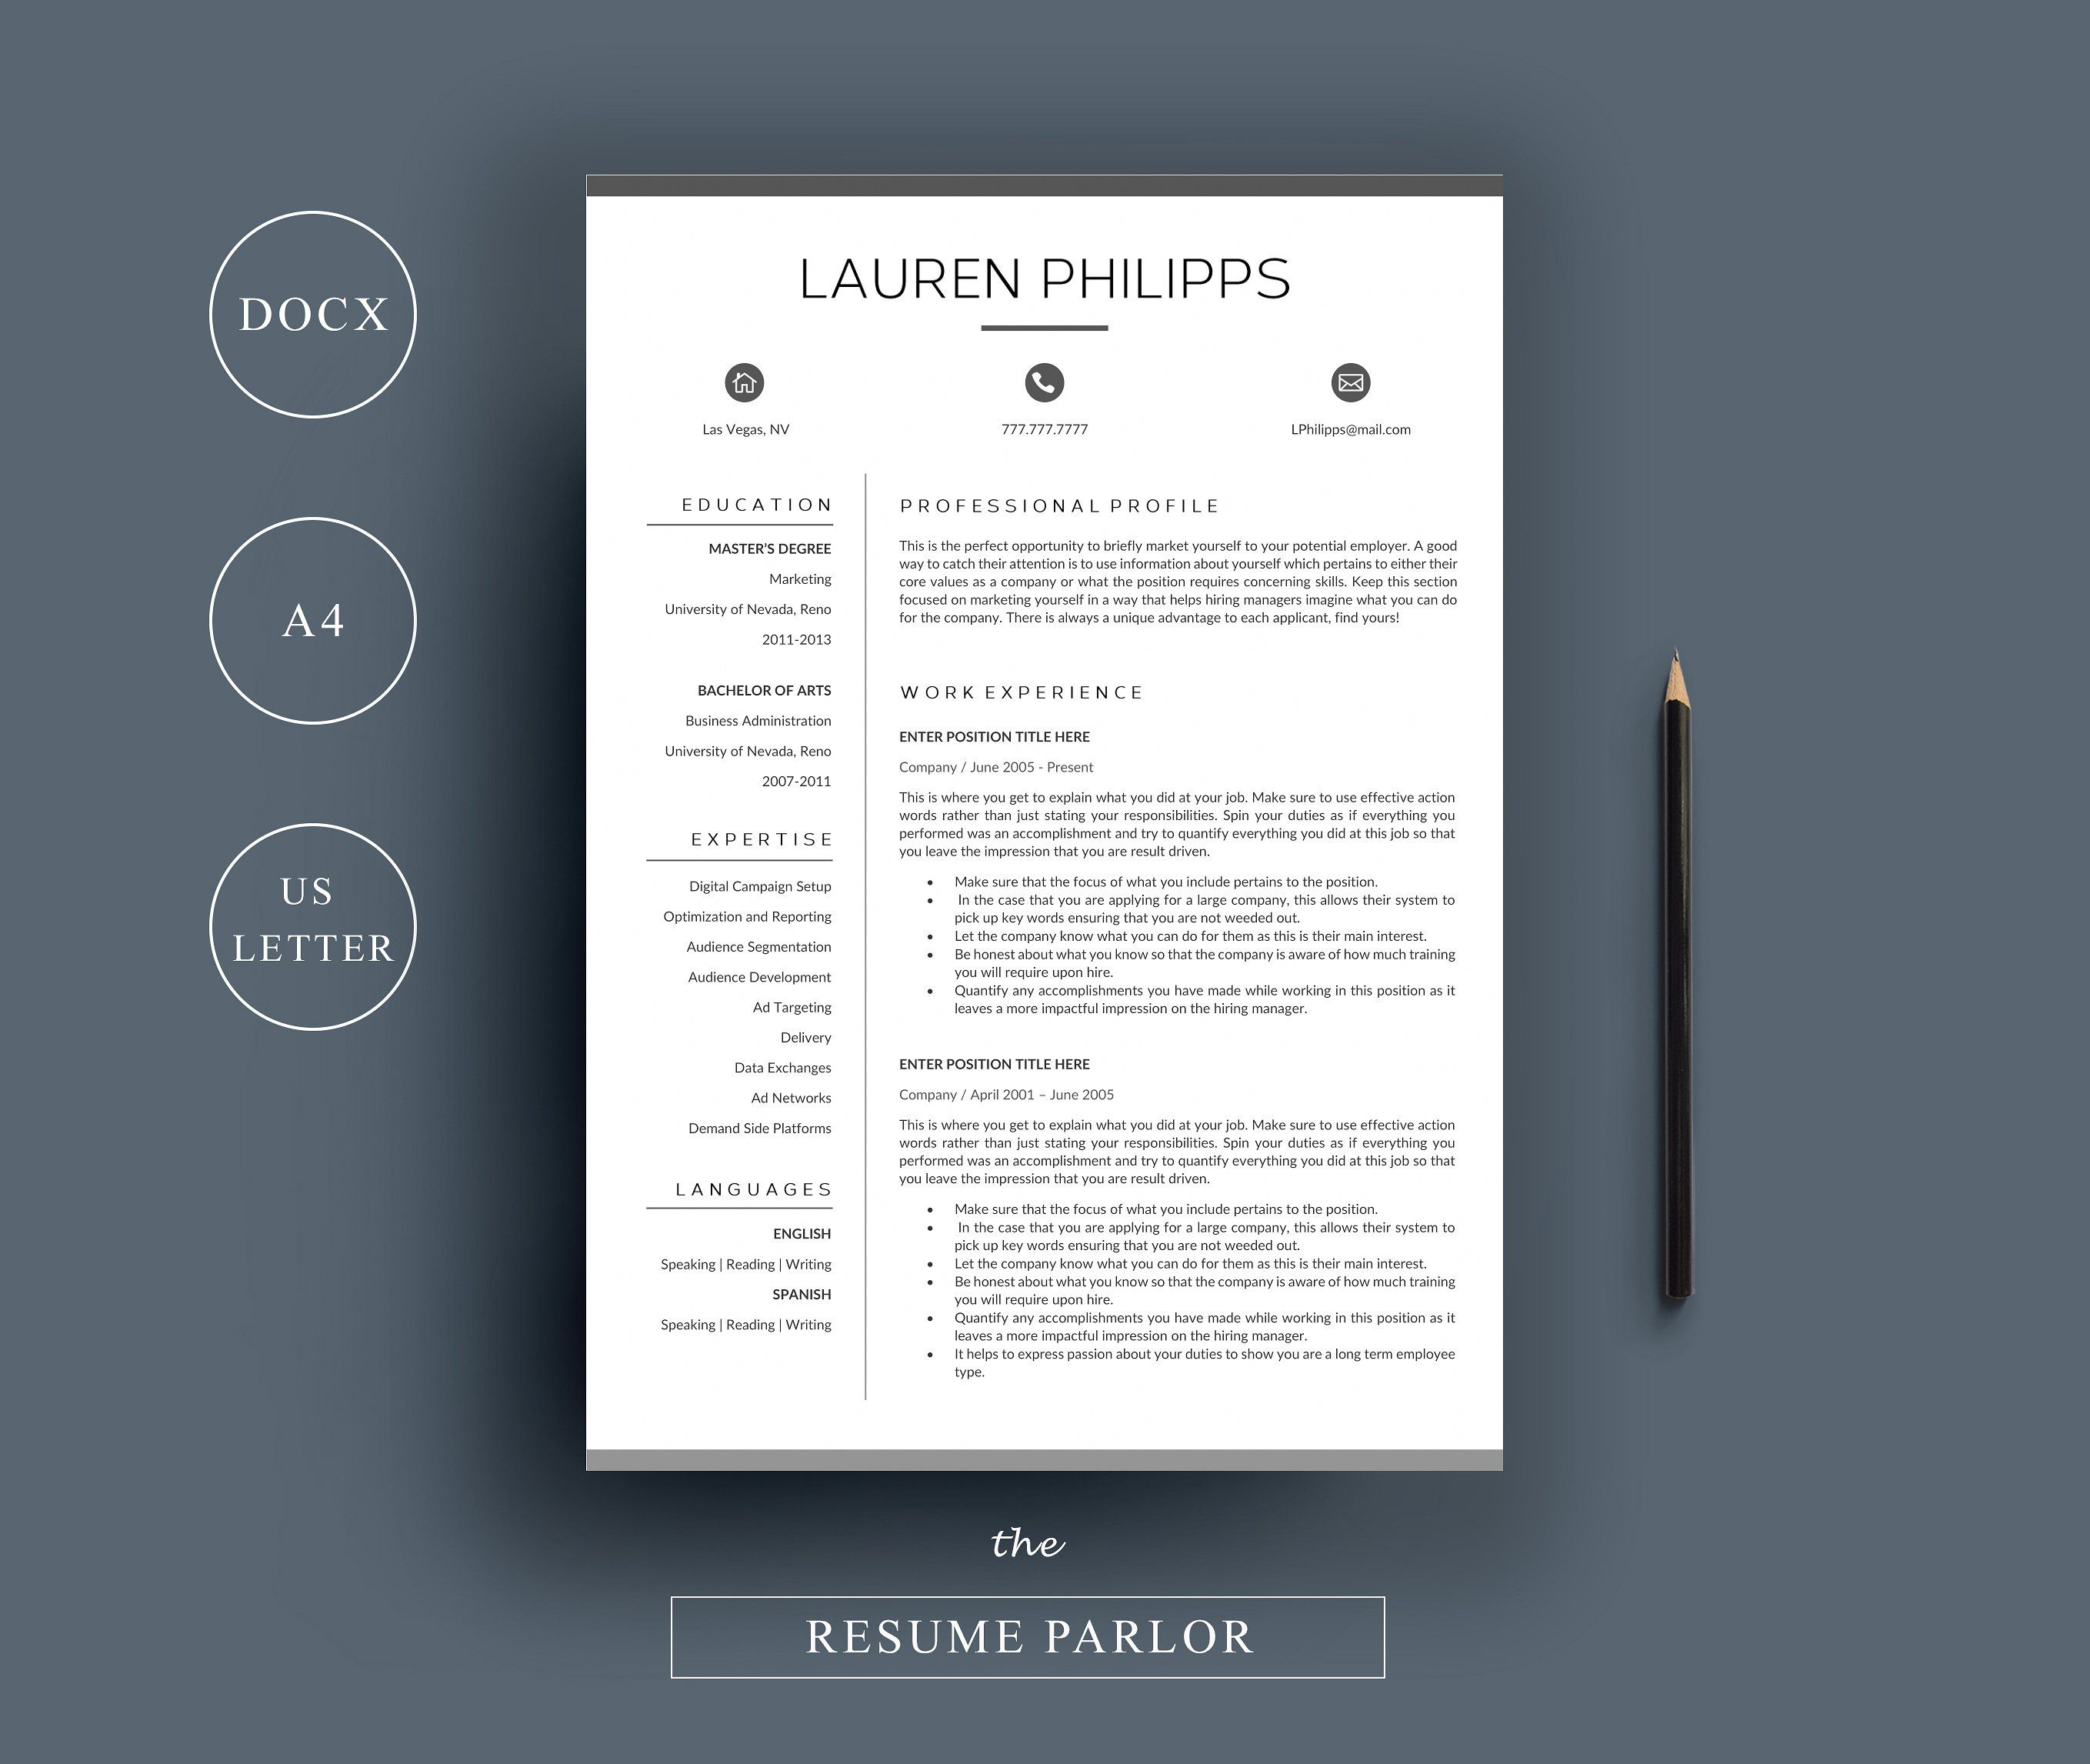 Resume  Page  A  Us Letter By The Resume Parlor On